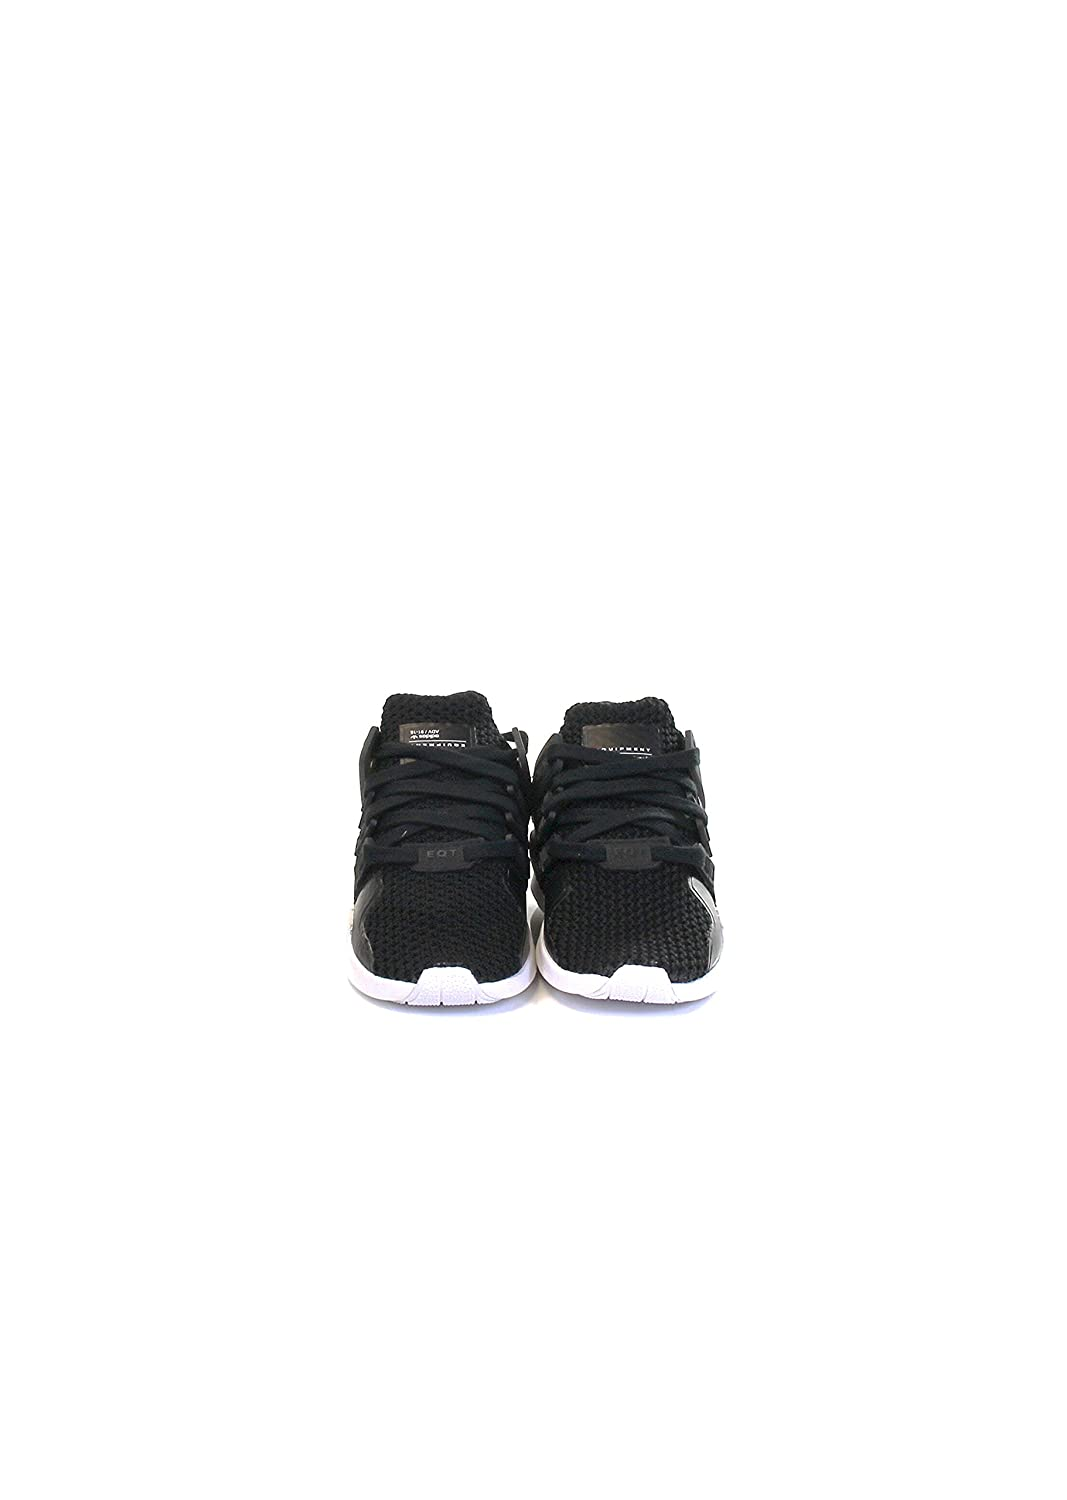 designer fashion 3d3bf b76e8 adidas Unisex Babies EQT Support Adv I Trainers Amazon.co.uk Shoes  Bags